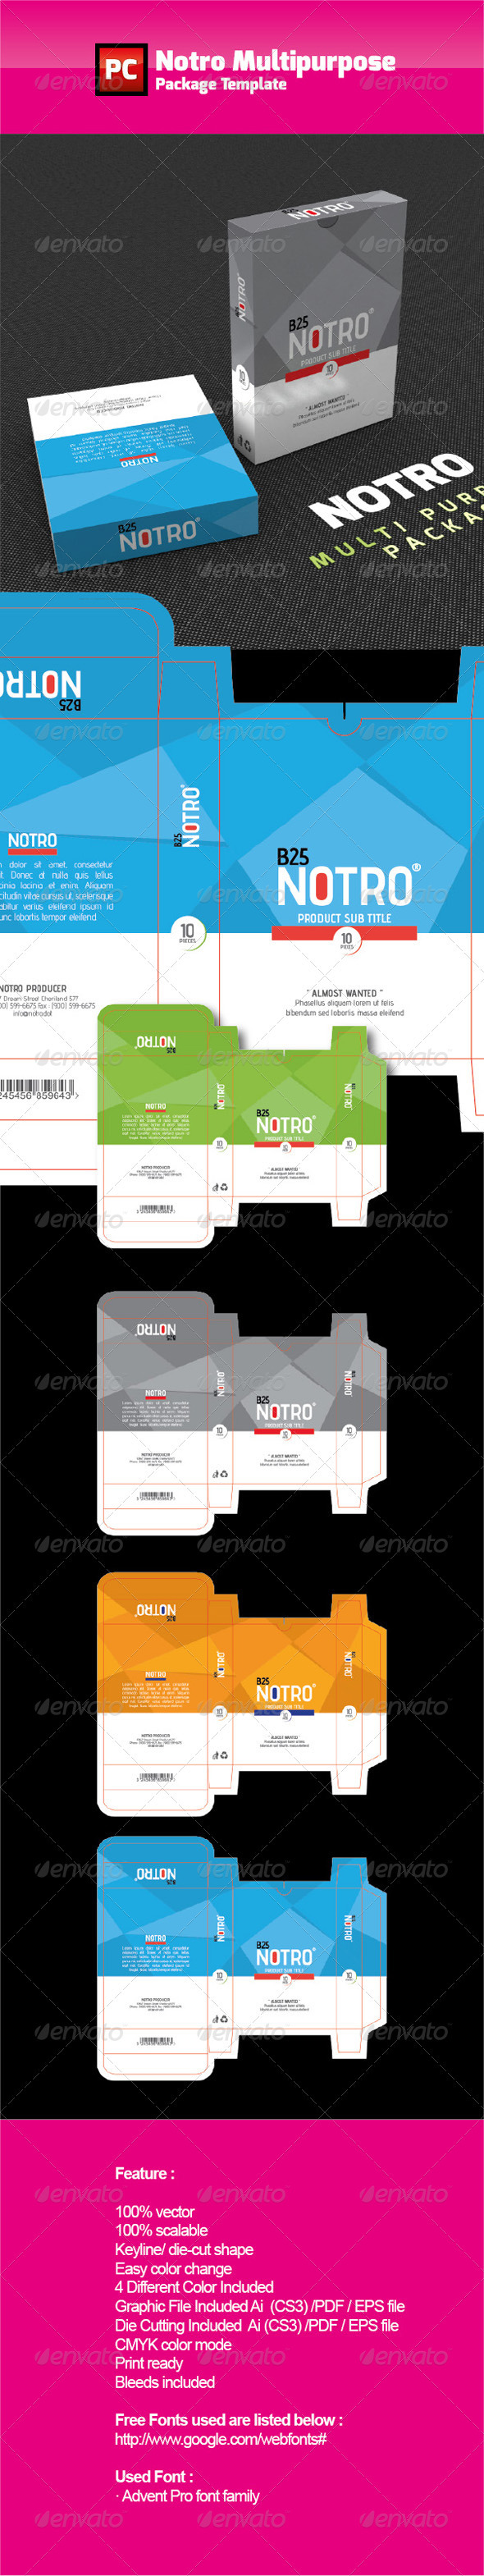 NOTRO Multipurpose Box Template - Packaging Print Templates